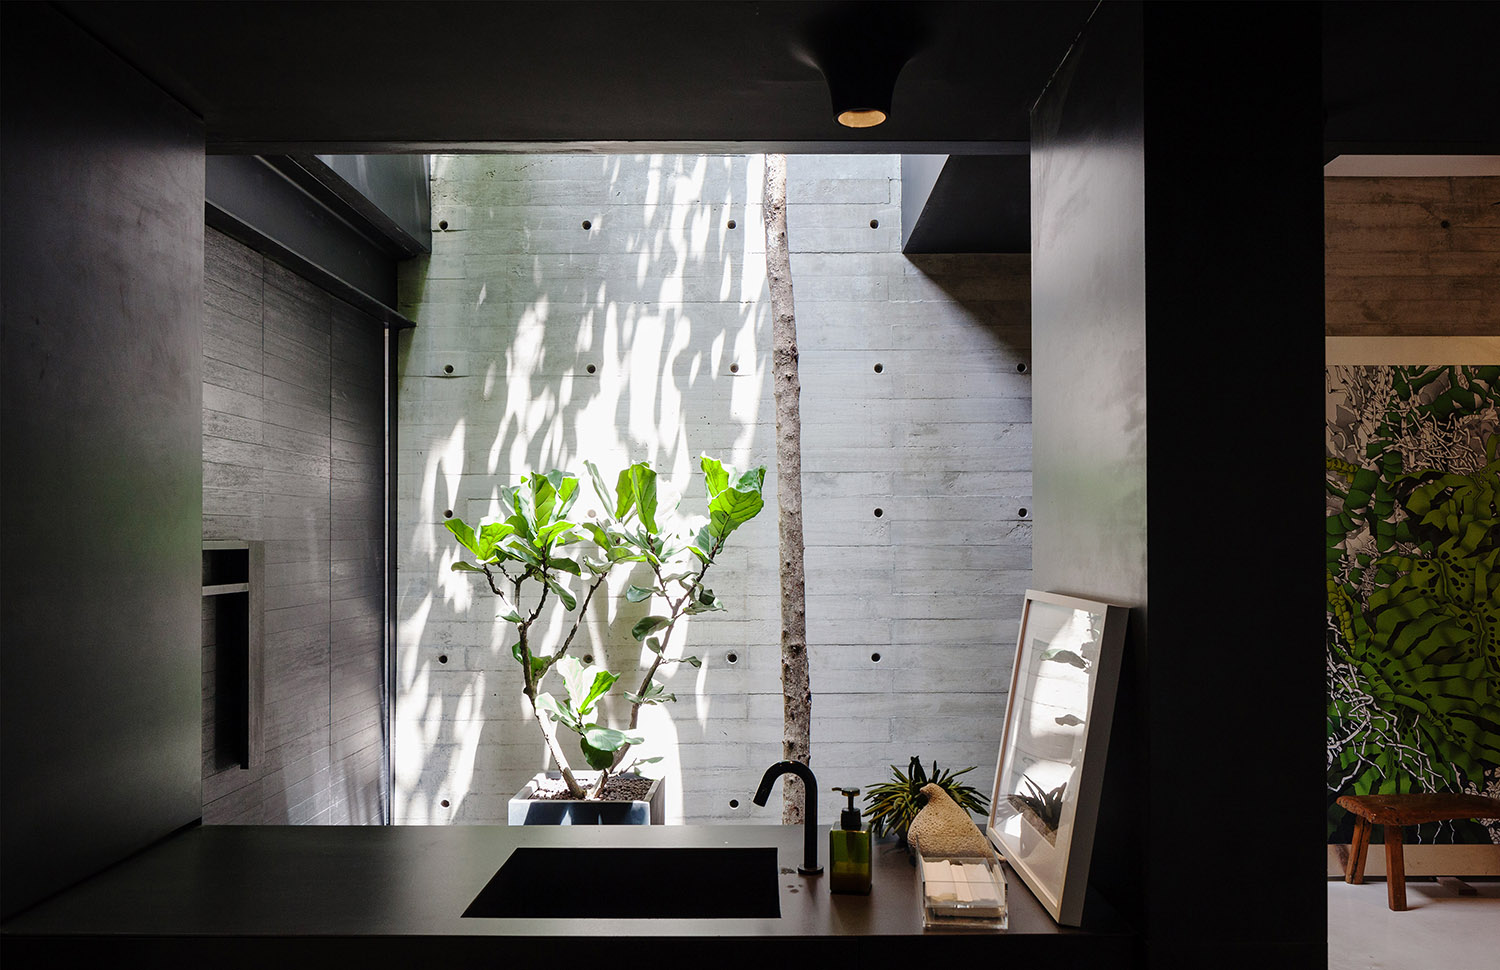 A 10m Memphat tree is planted indoors at the entrance. Fabian Ong